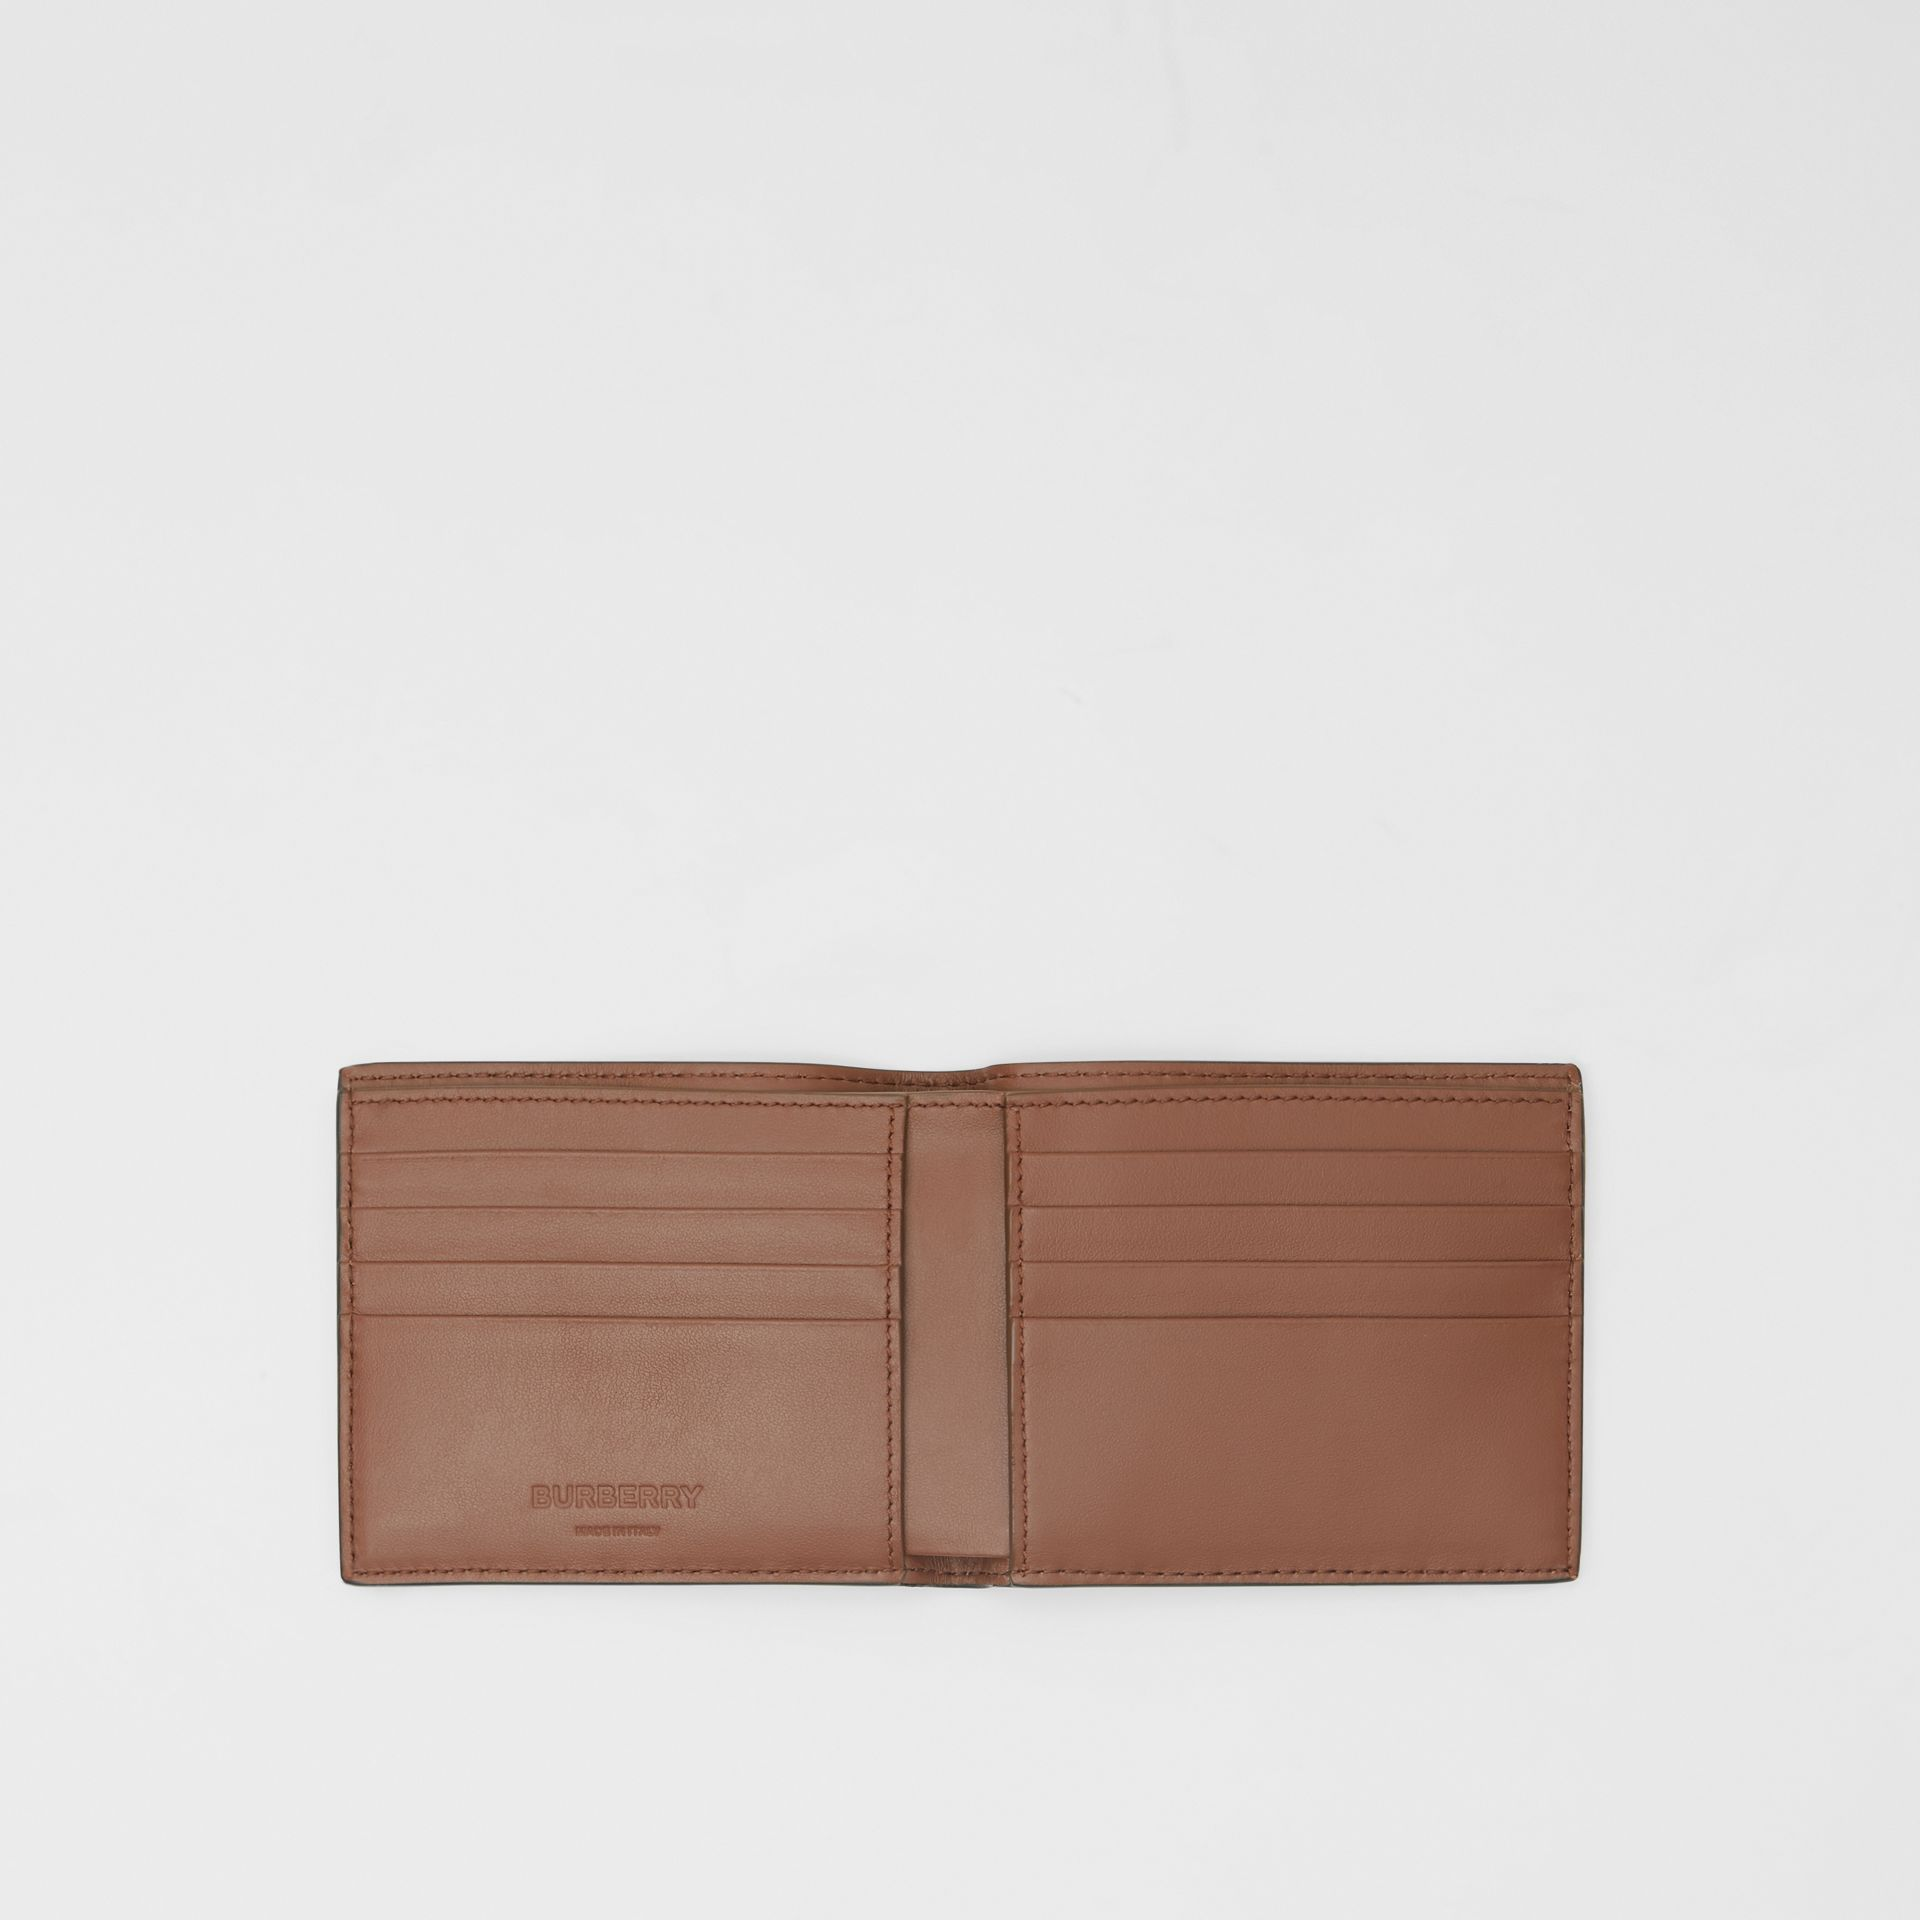 Monogram Leather International Bifold Wallet in Dark Tan - Men | Burberry Australia - gallery image 2